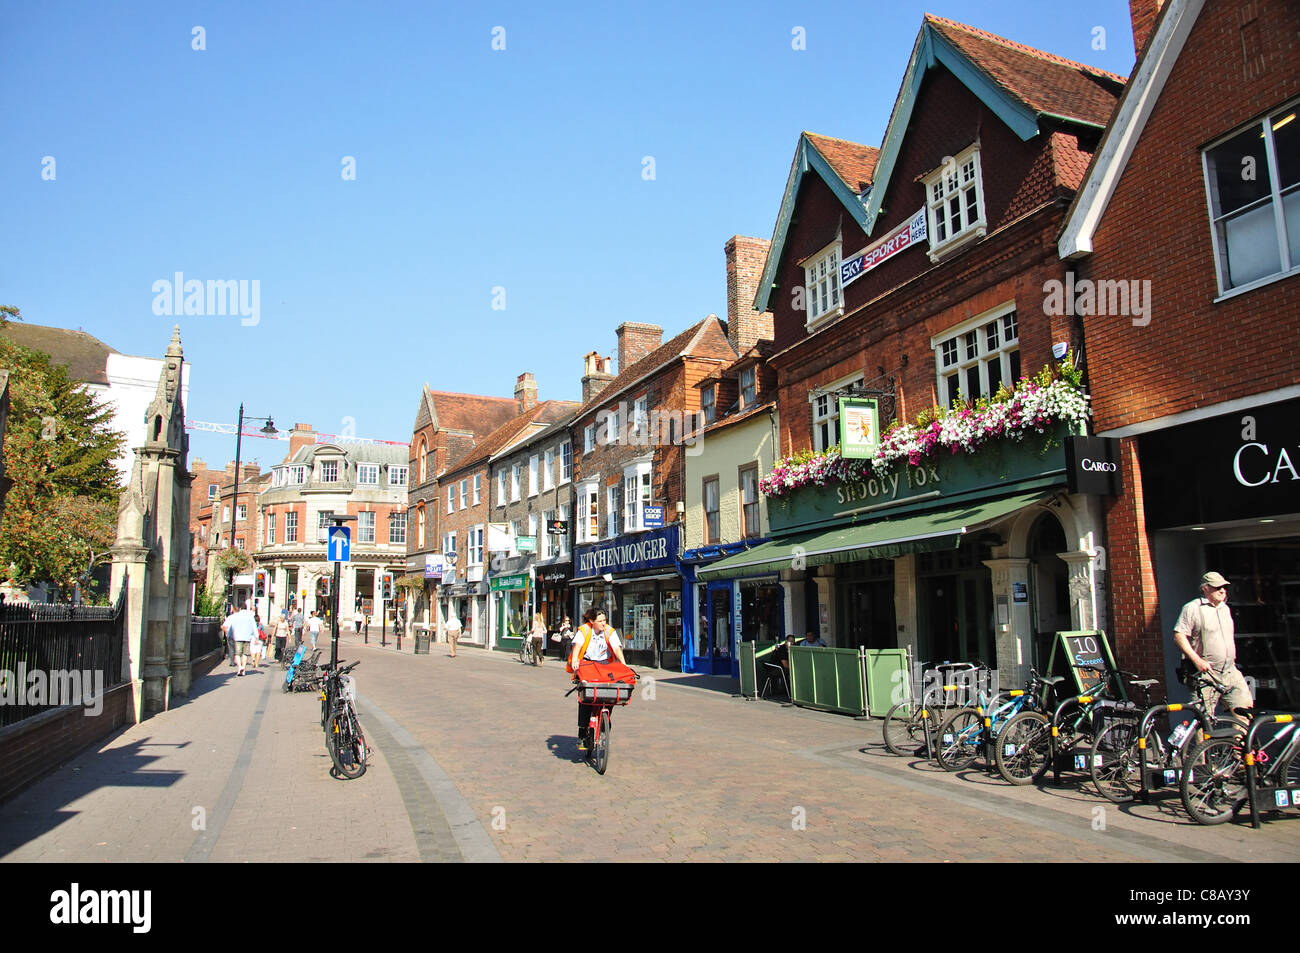 newbury berkshire united kingdom